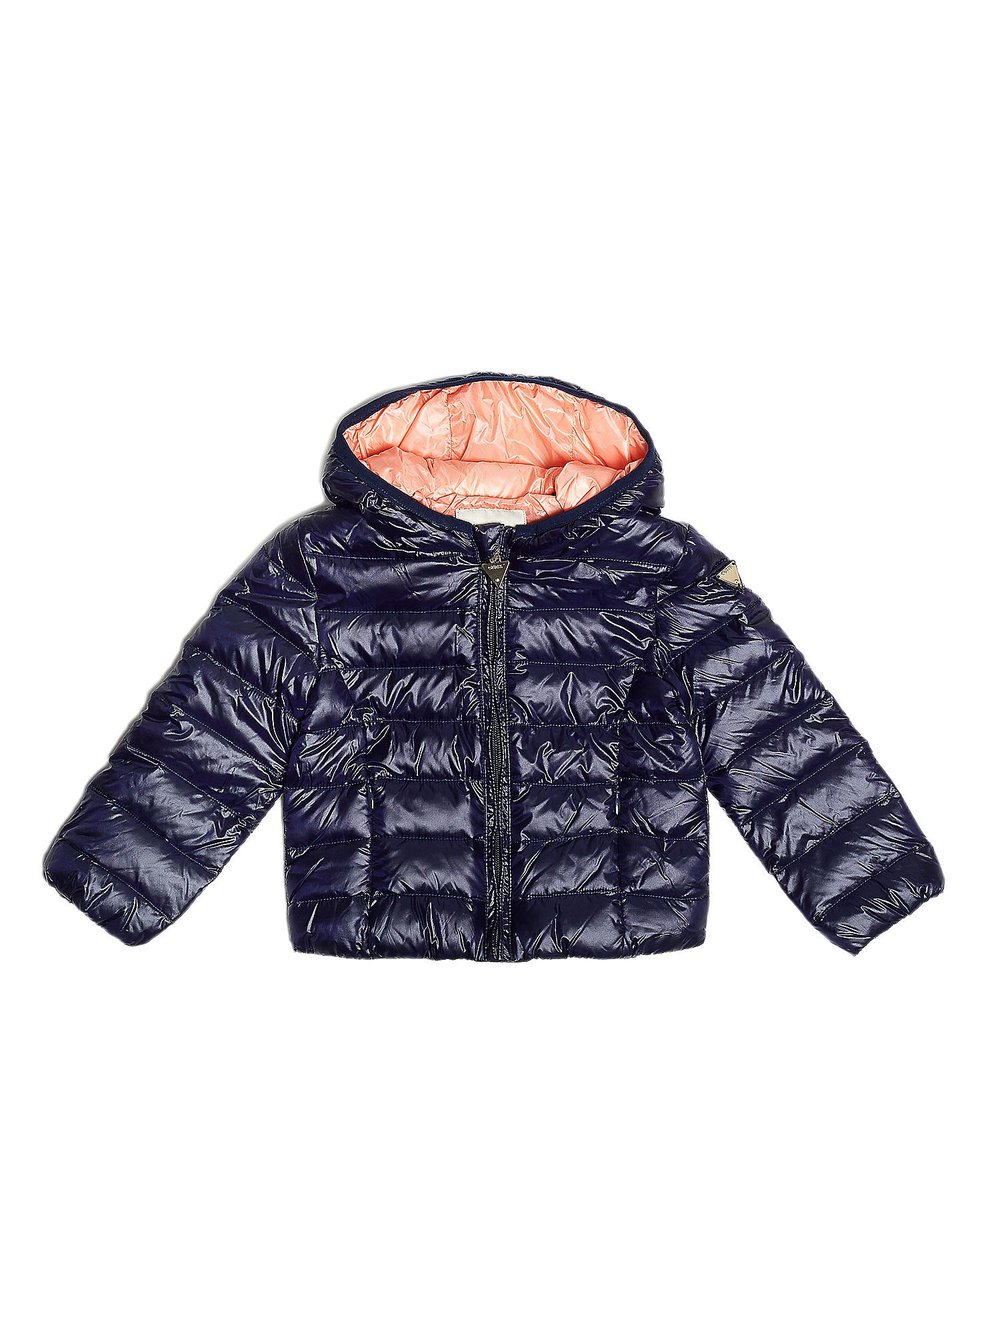 Guess-Kids-Duvet-Coat.jpeg